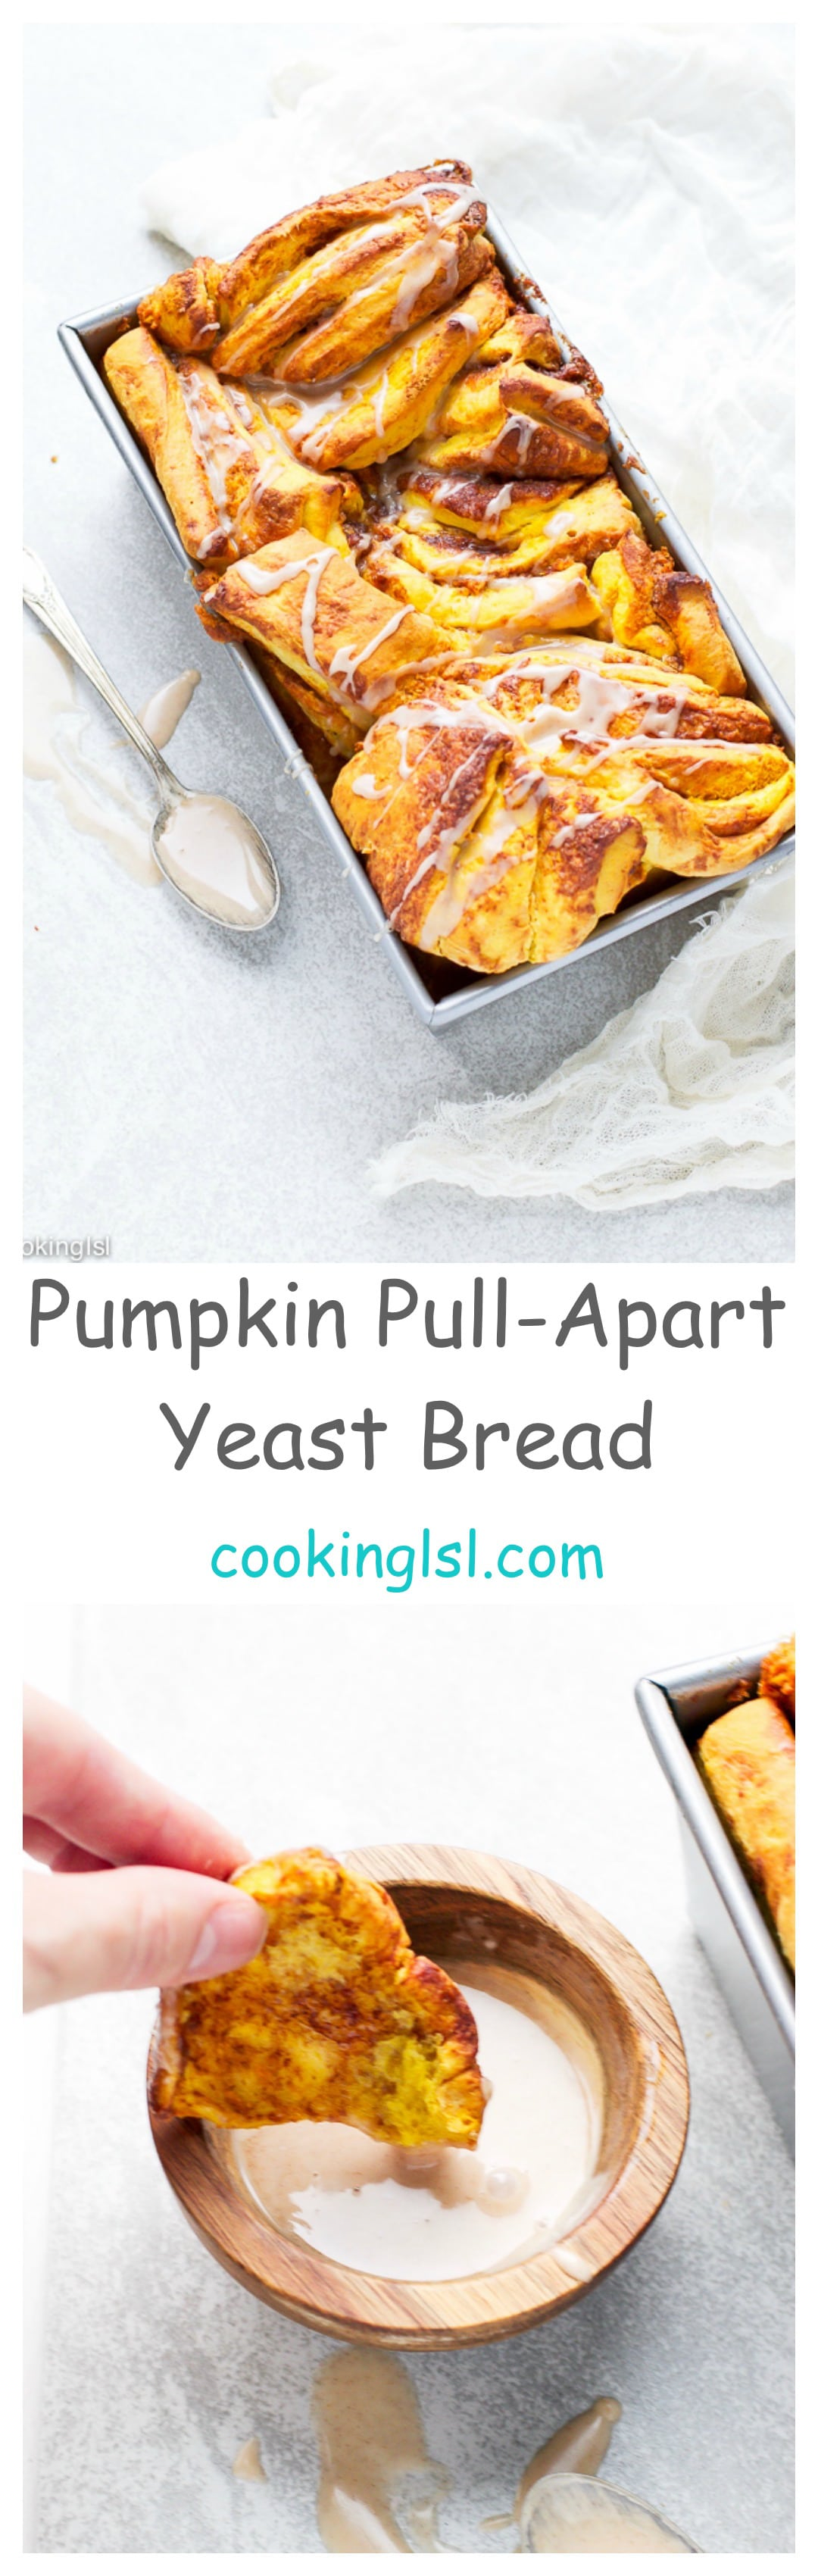 Pumpkin-Pull-Apart-Yeast-Bread-Recipe